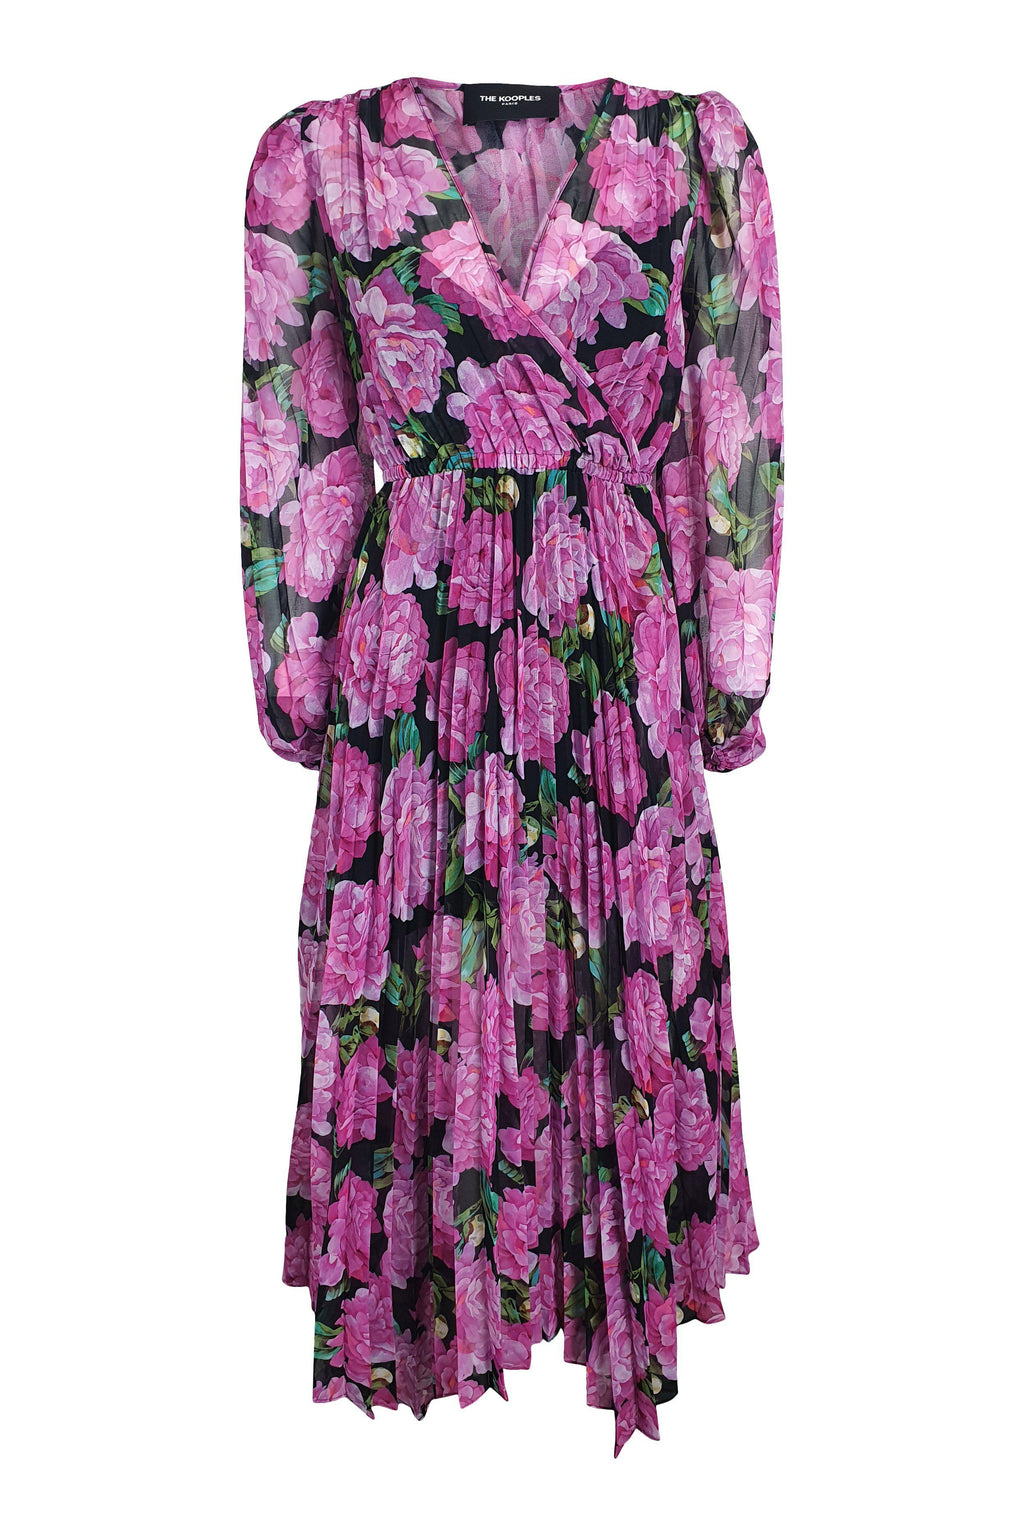 THE KOOPLES Pink Winter Peonies Midi Dress (2 | UK 12 | EU 38)-The Freperie